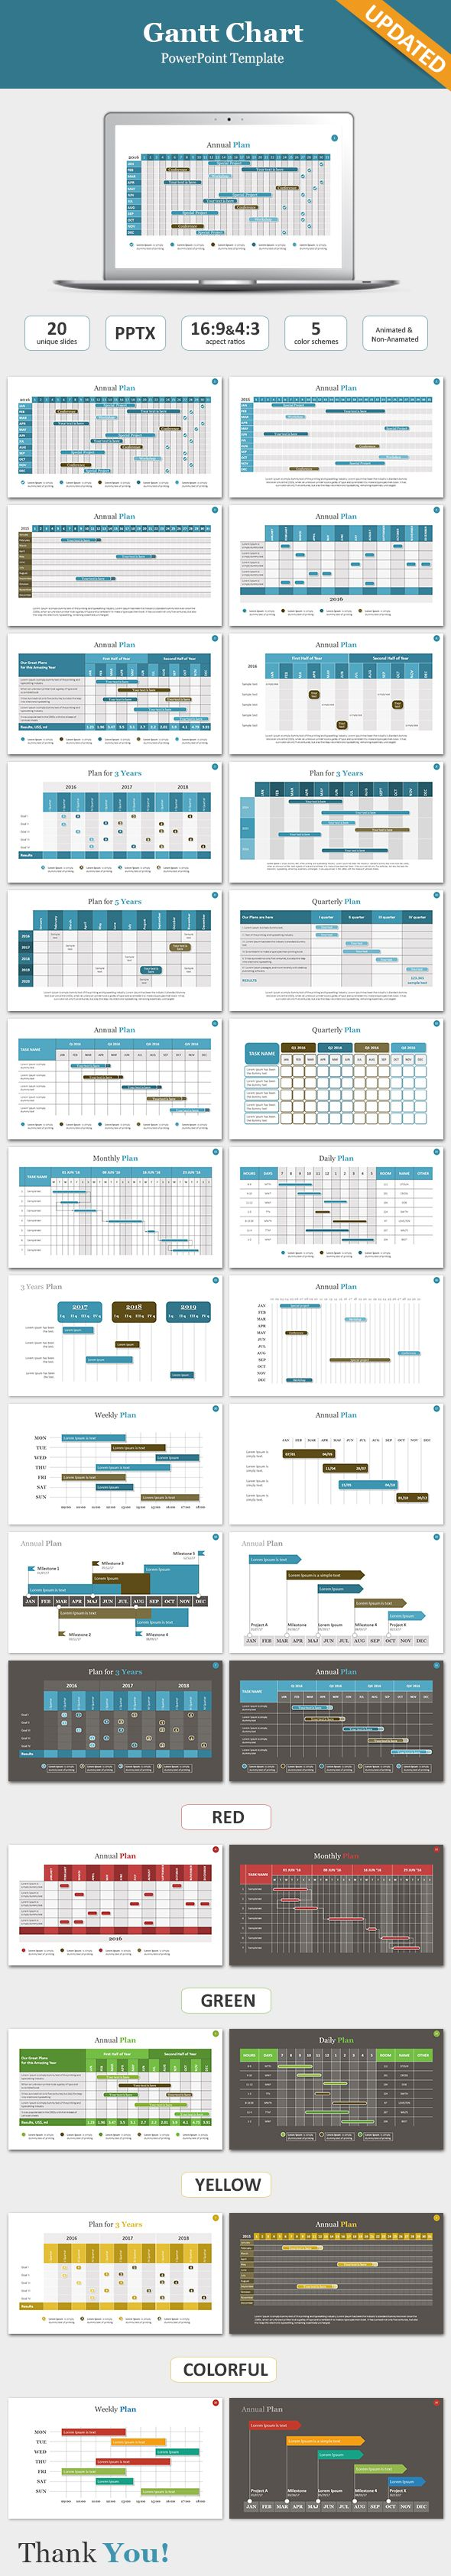 14 best gantt chart images on pinterest gantt chart project gantt chart powerpoint template powerpoint templates presentation templates nvjuhfo Choice Image